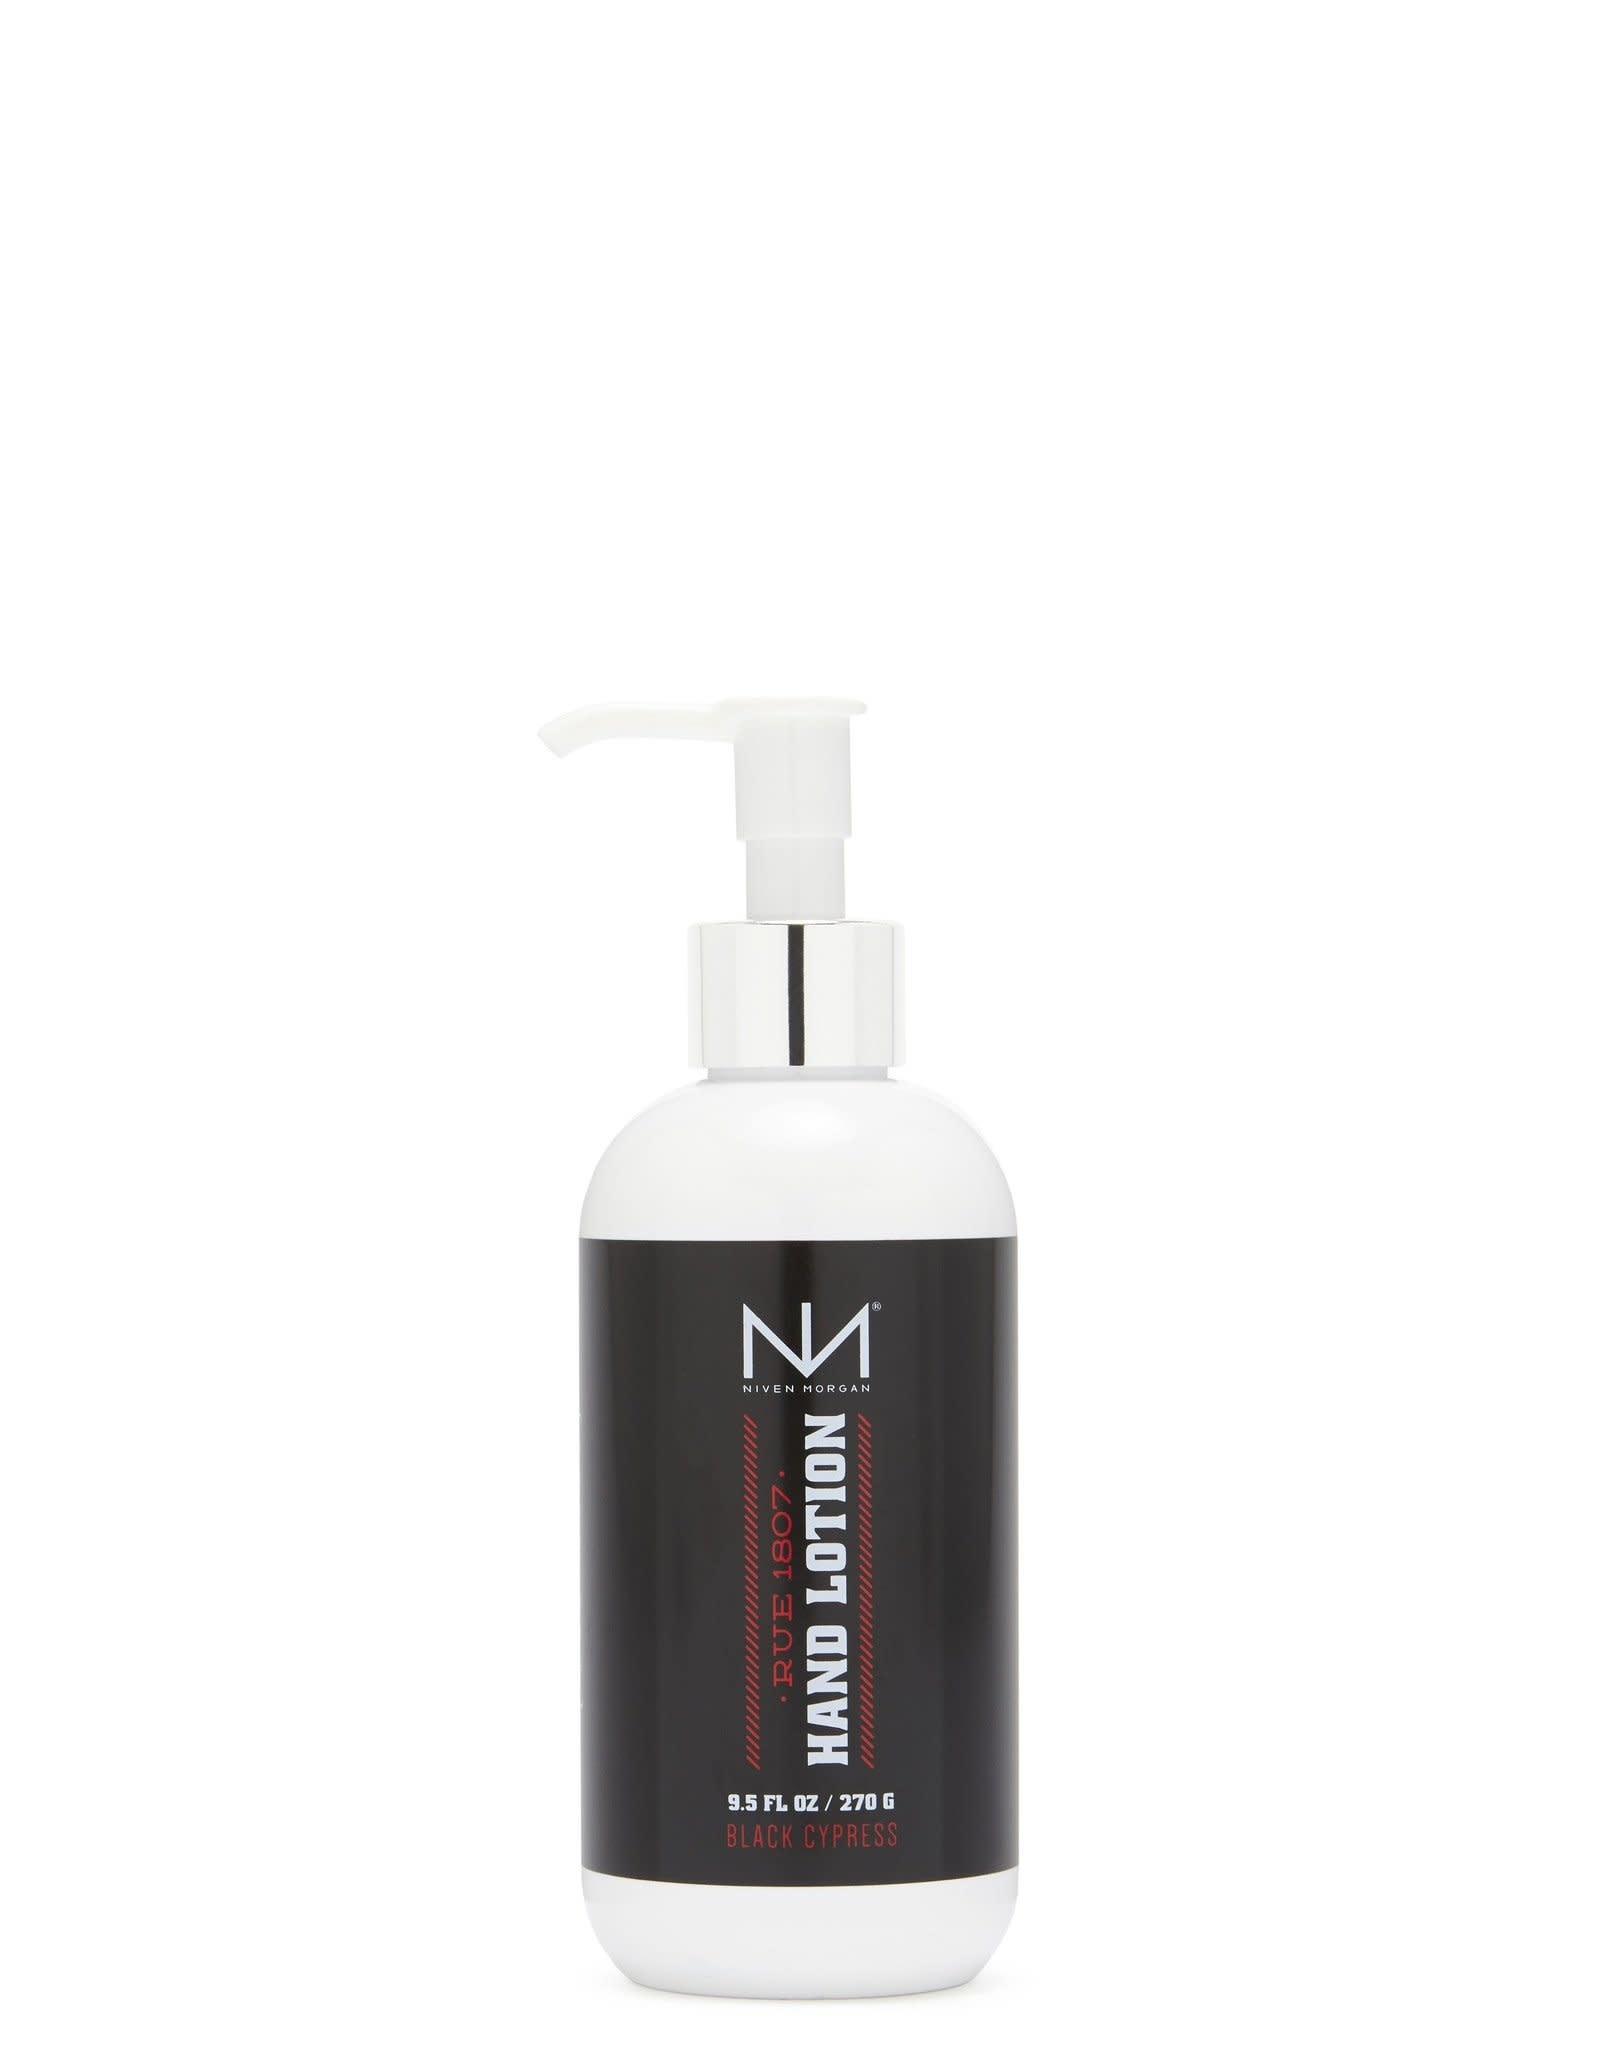 NM Rue 1807 Hand Lotion